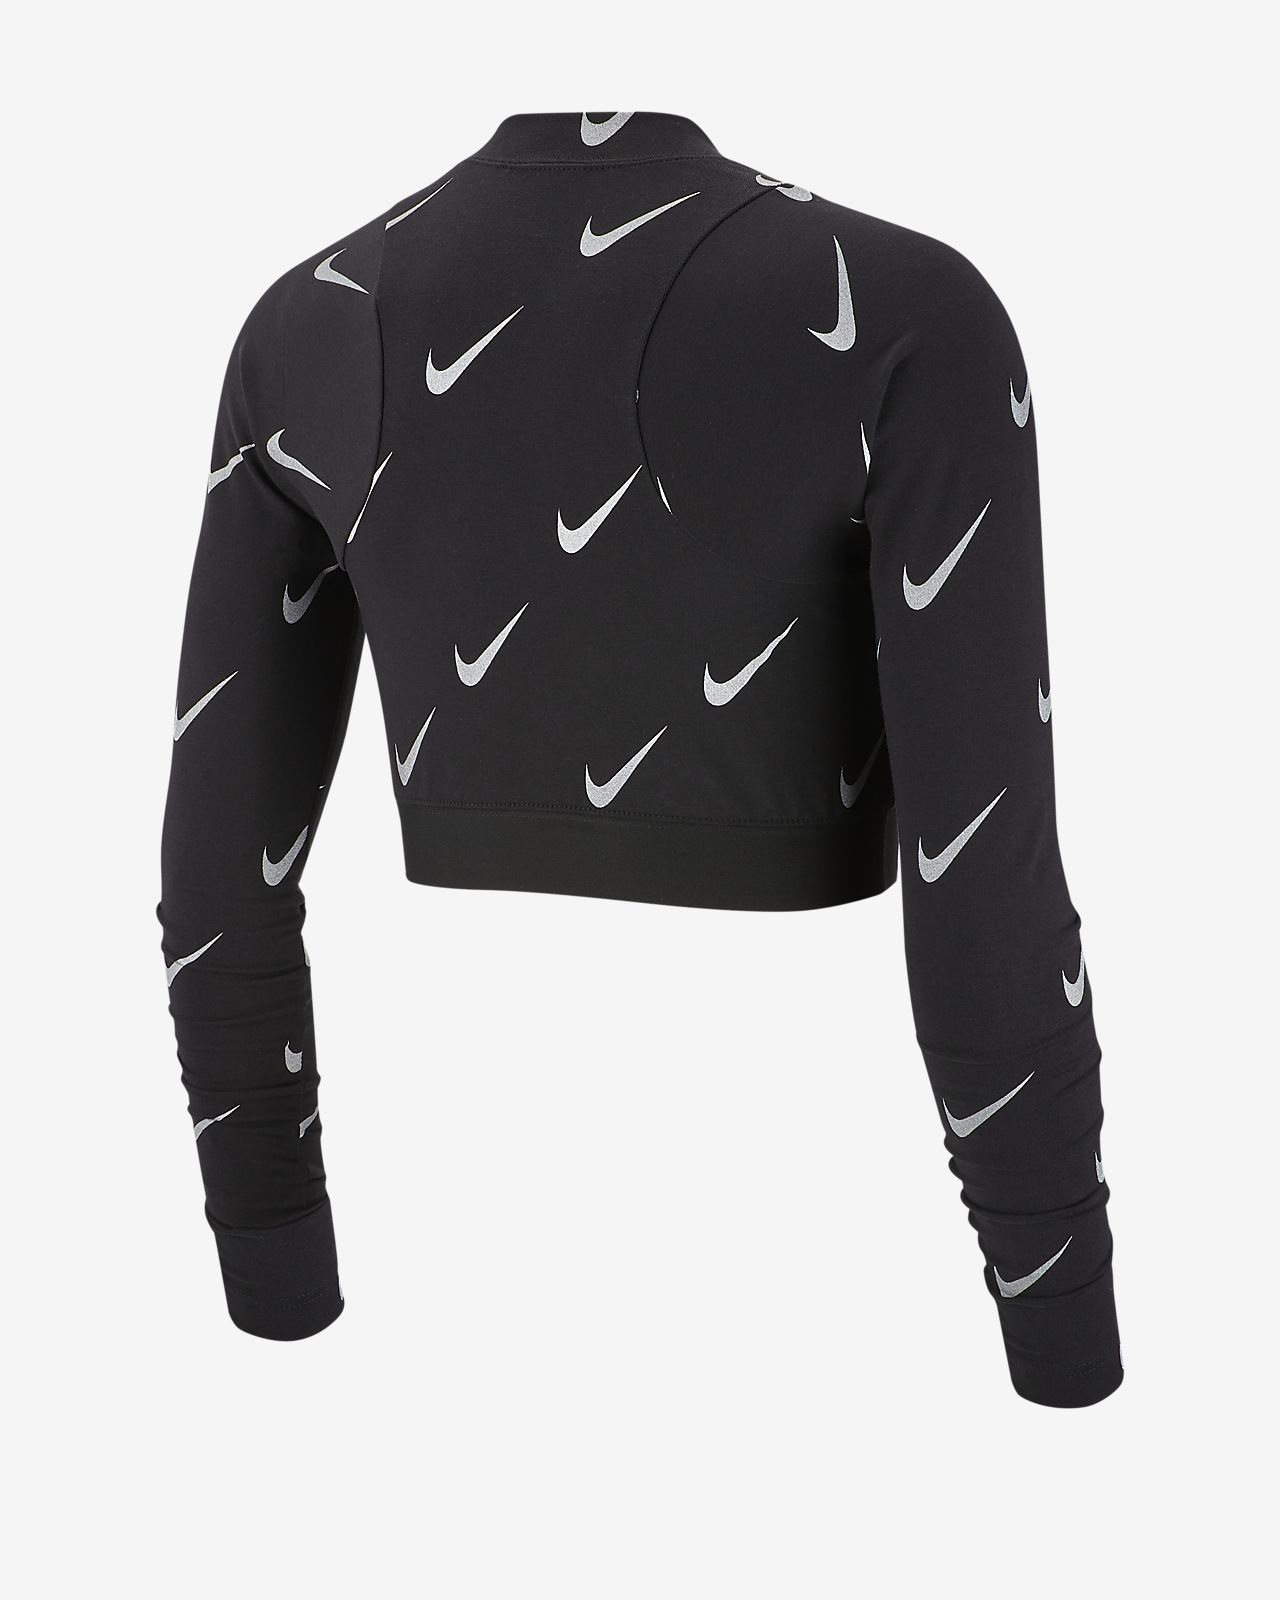 1c2786e3e564 Nike Sportswear Women s Metallic Long-Sleeve Crop Top. Nike.com AE